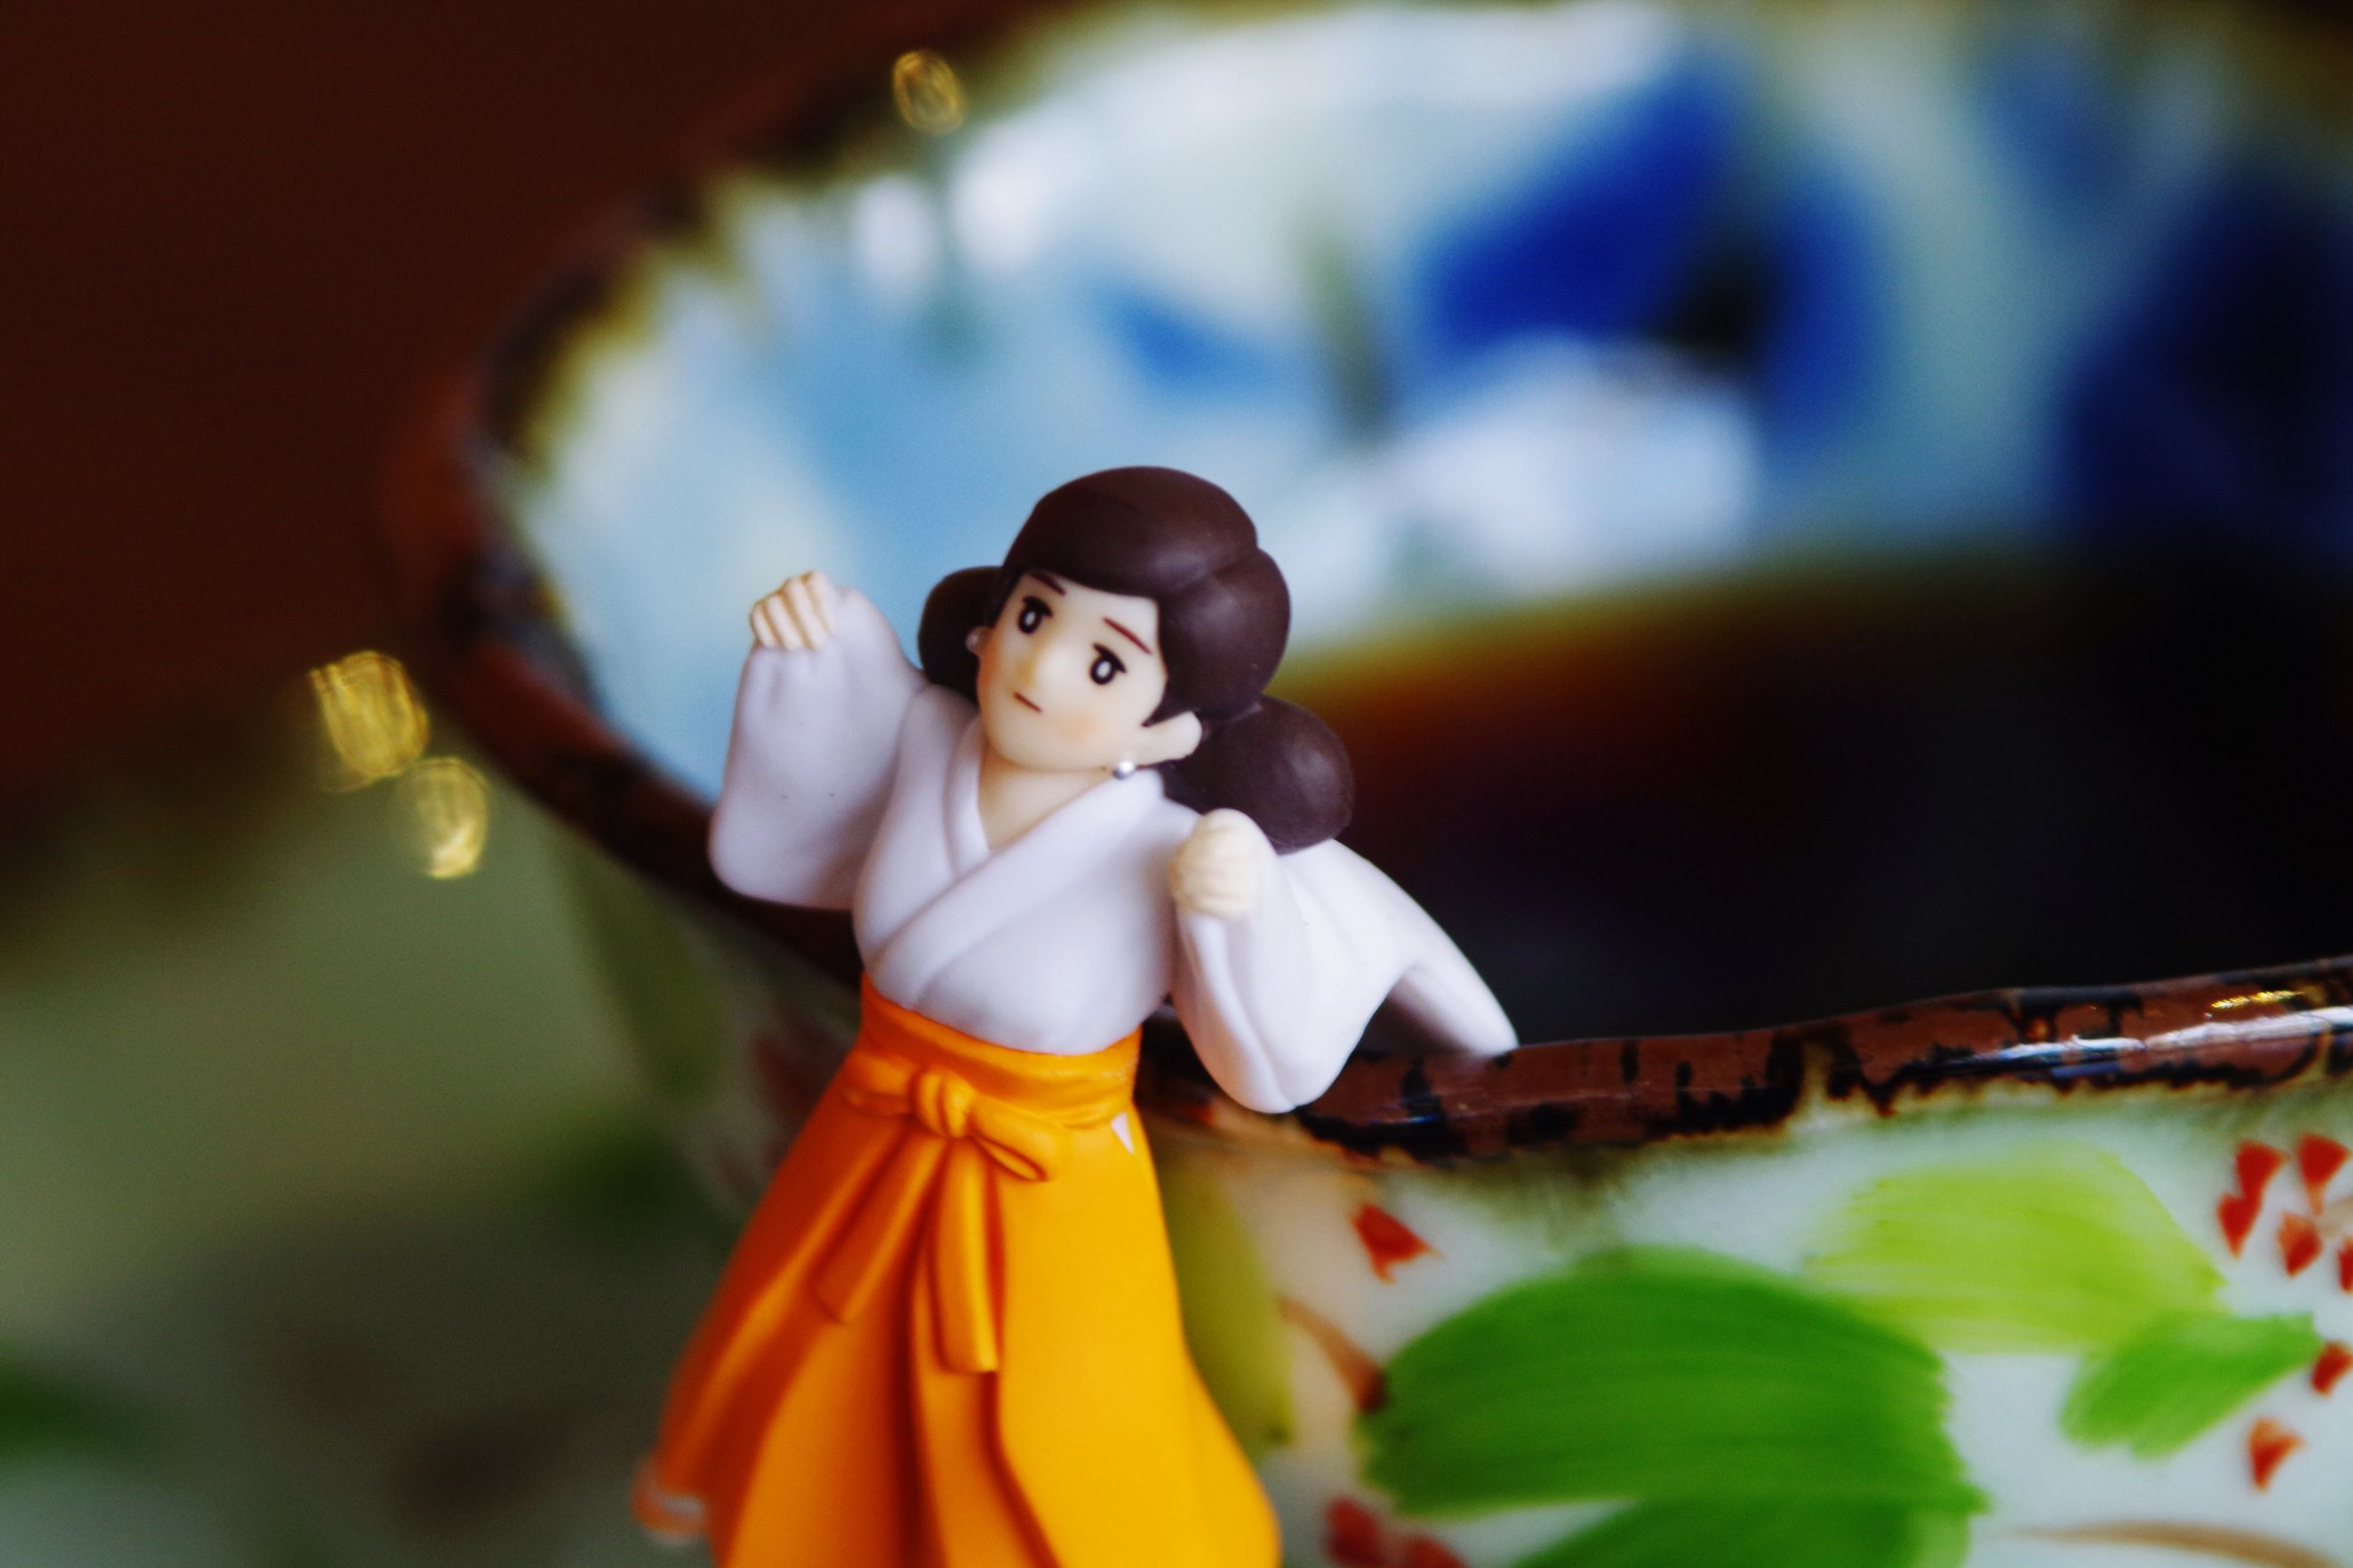 indoors, art, art and craft, human representation, flower, creativity, focus on foreground, animal representation, selective focus, religion, statue, figurine, close-up, sculpture, toy, spirituality, decoration, tradition